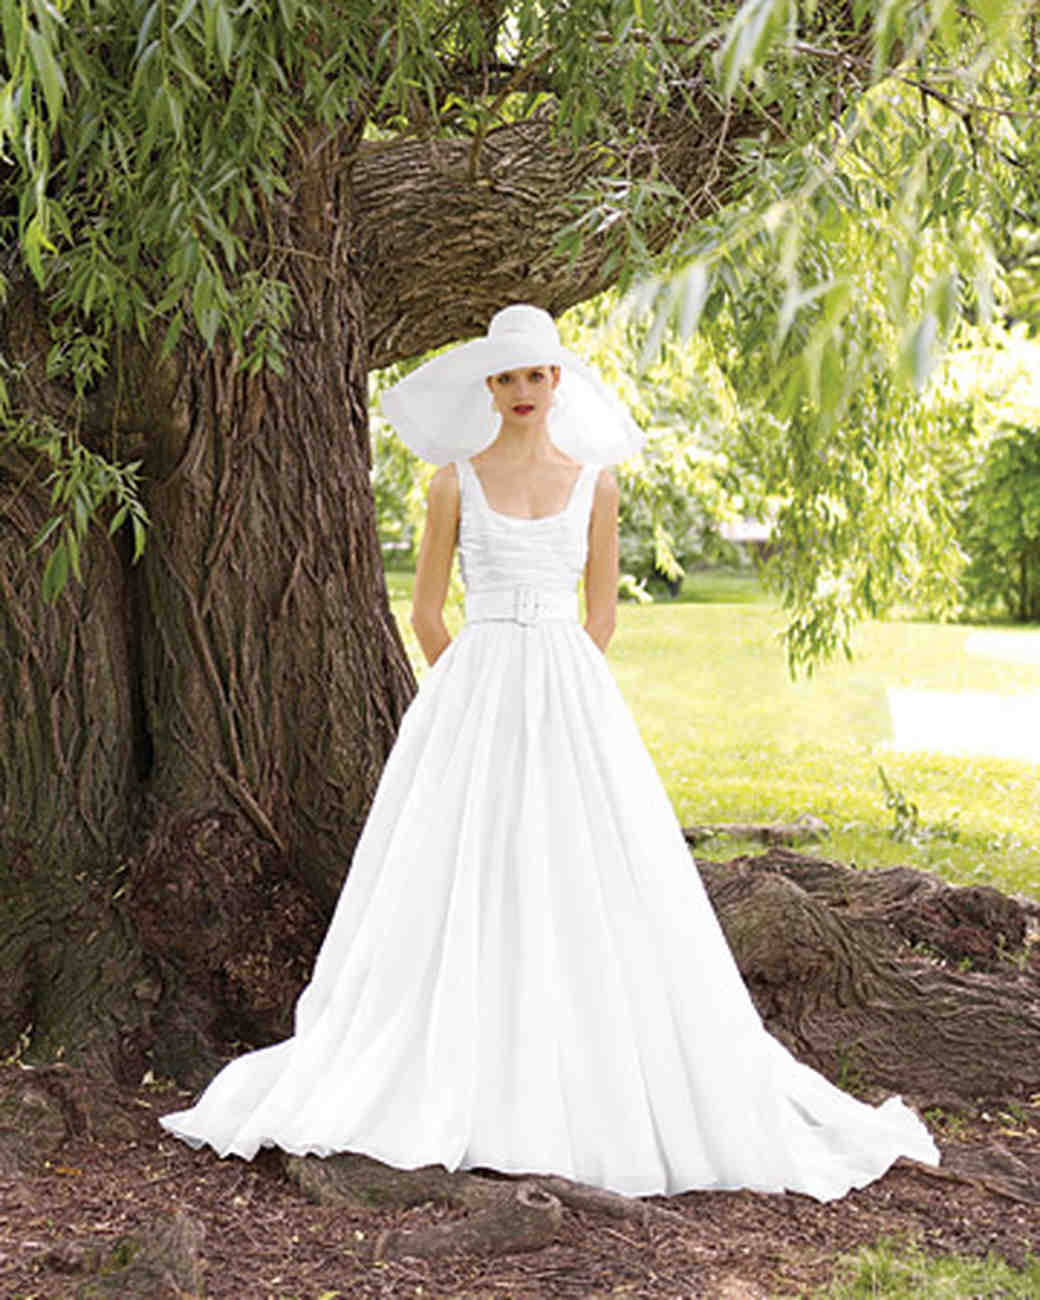 Dress Gowns For Weddings: Perfect Gowns For An Outdoor Wedding